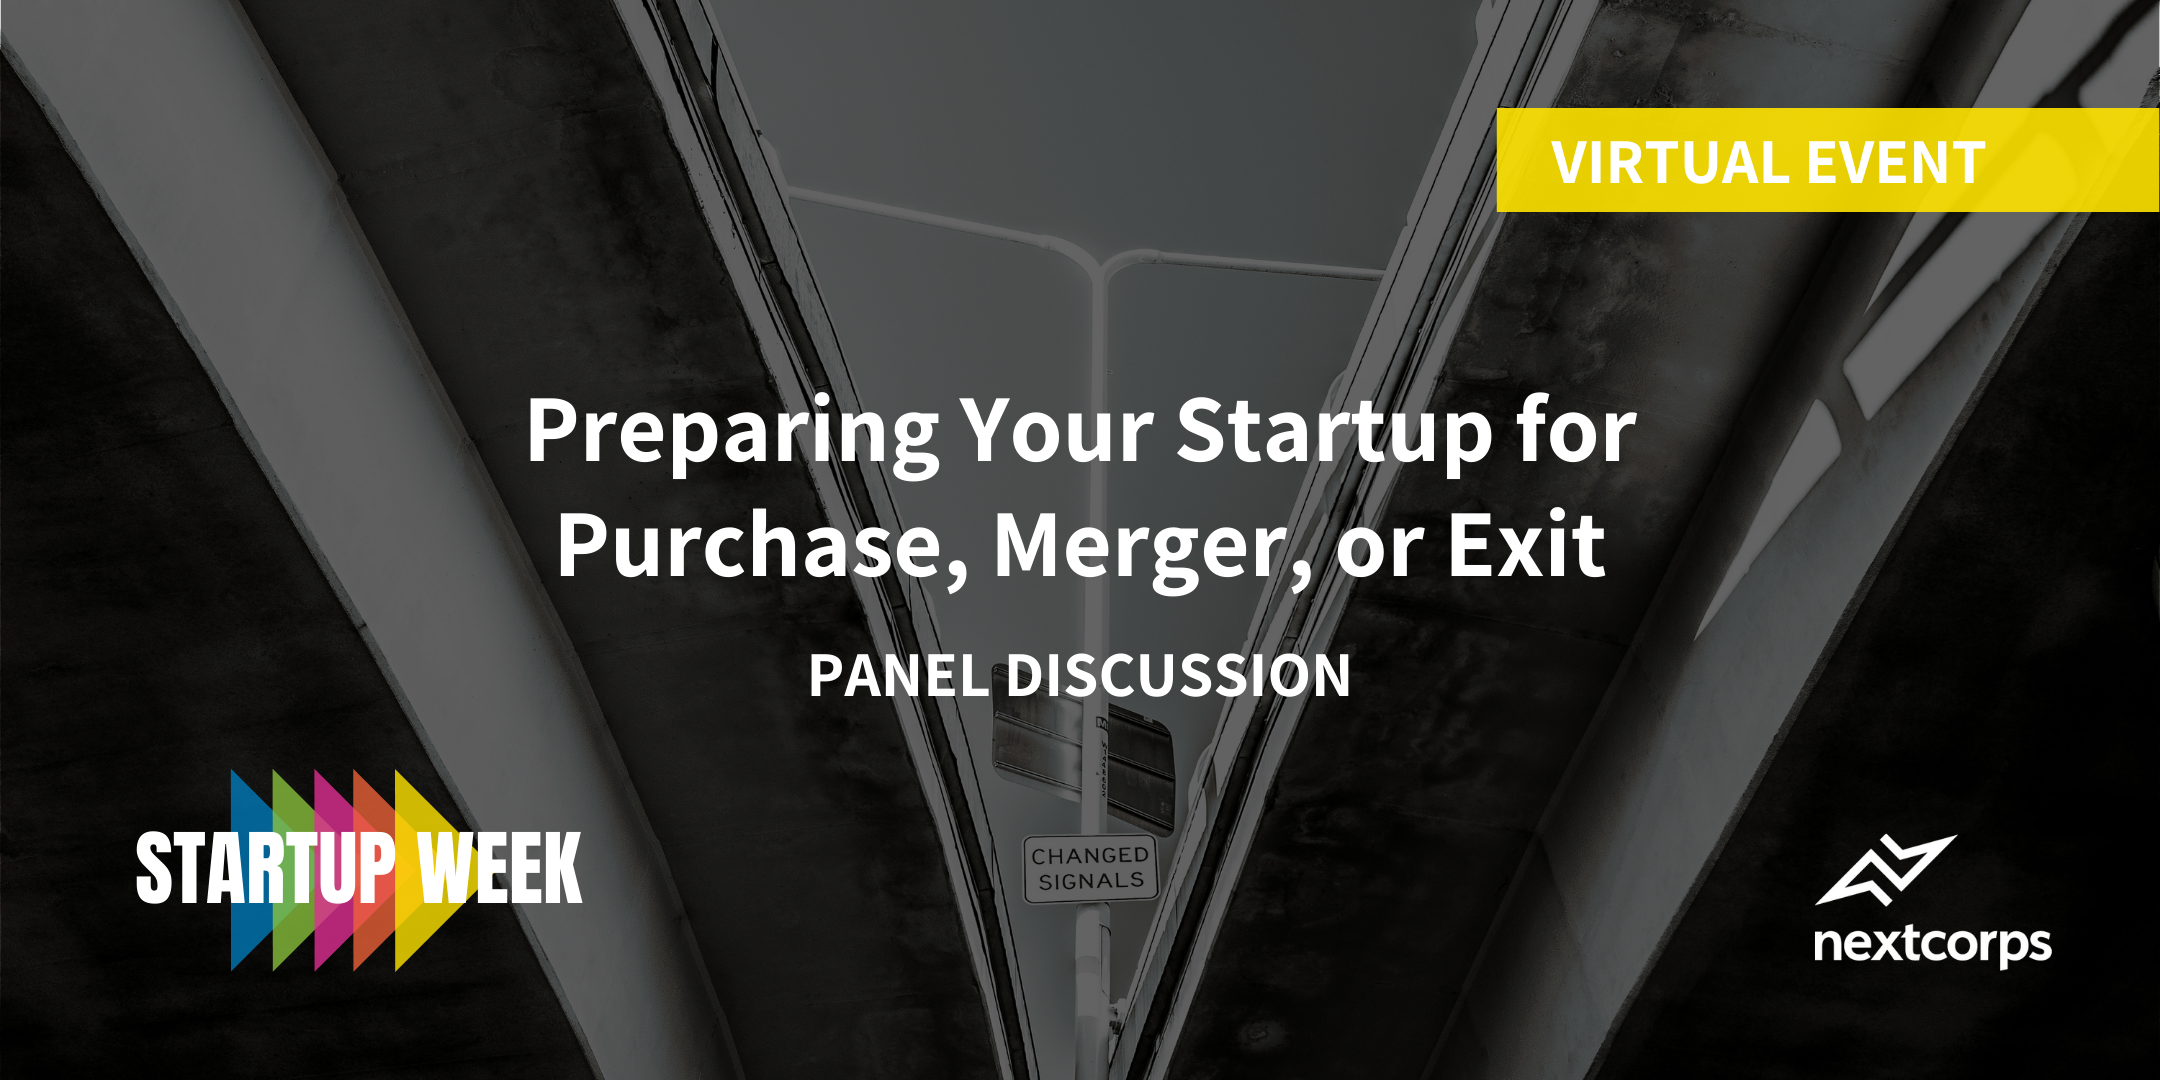 Preparing Your Startup for Purchase, Merger, or Exit